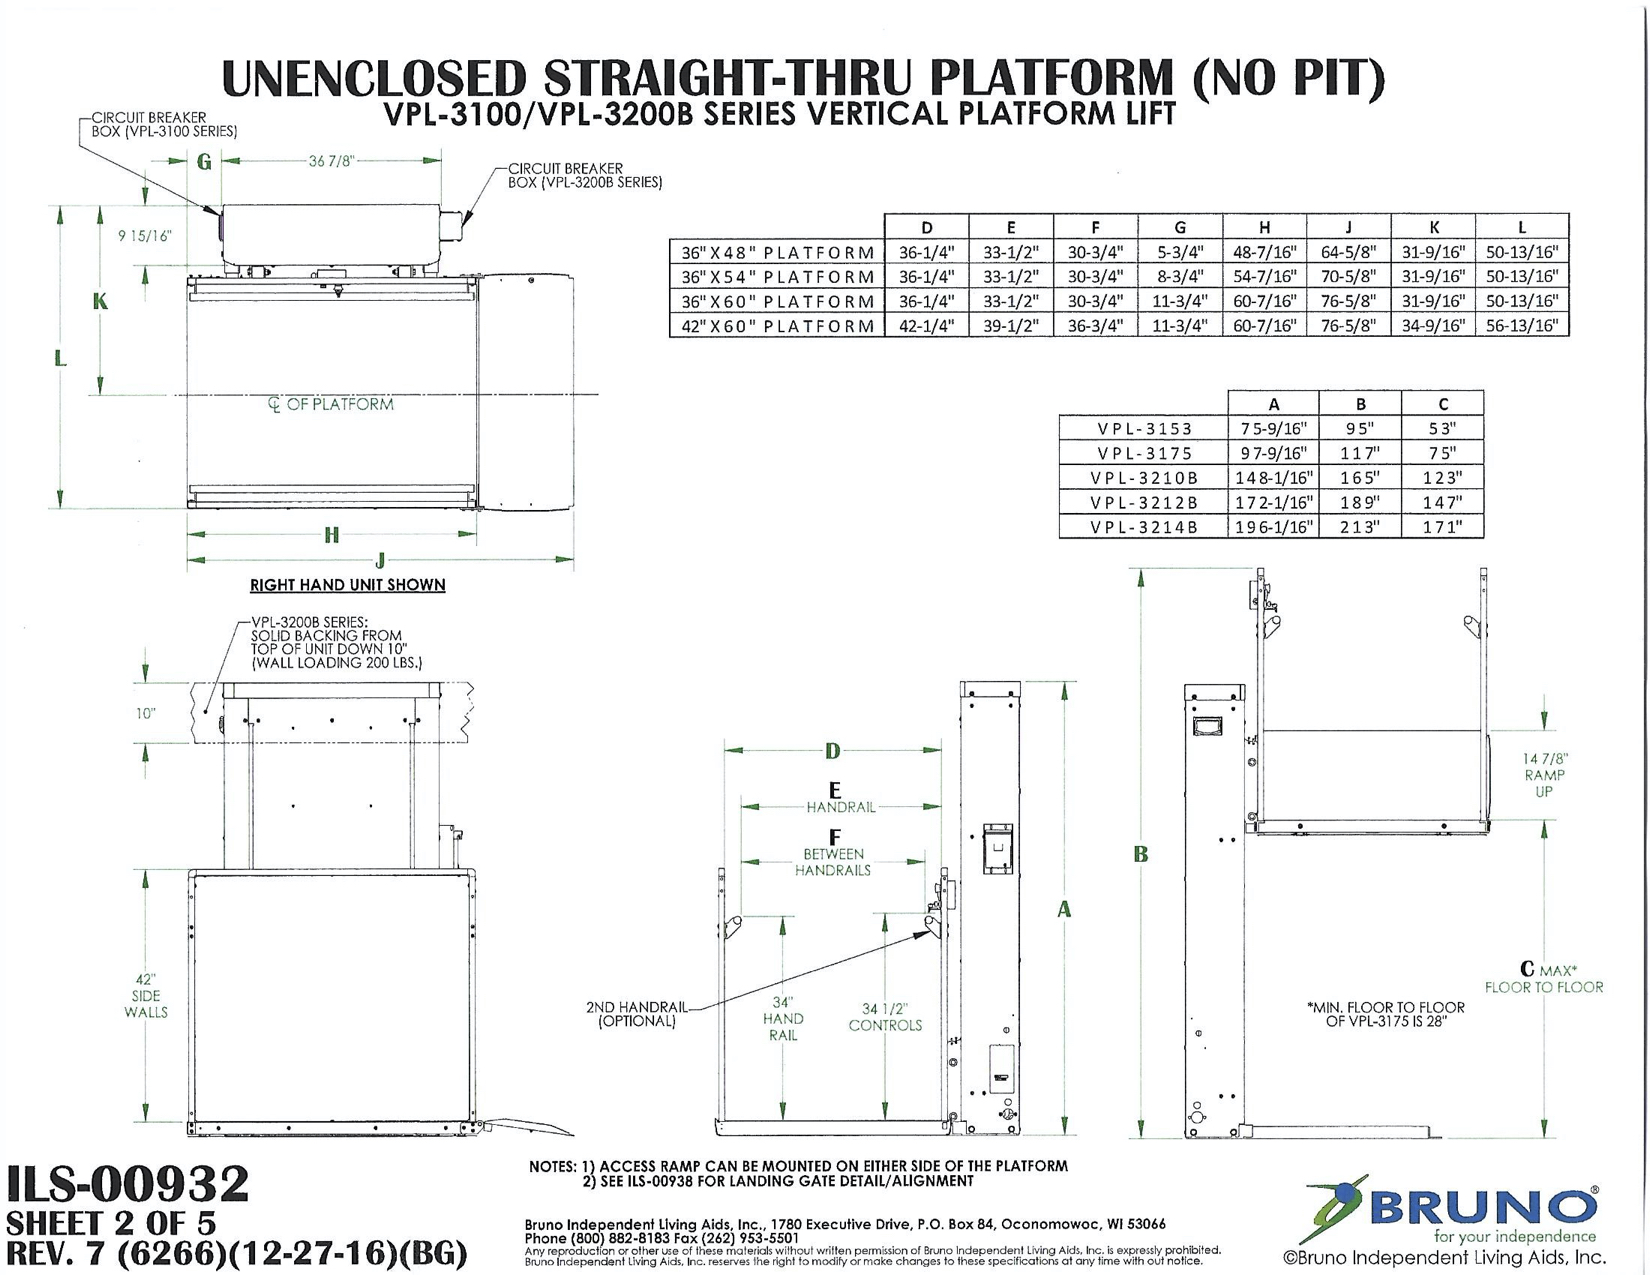 Download the Technical Specifications & Application Drawings PDFs